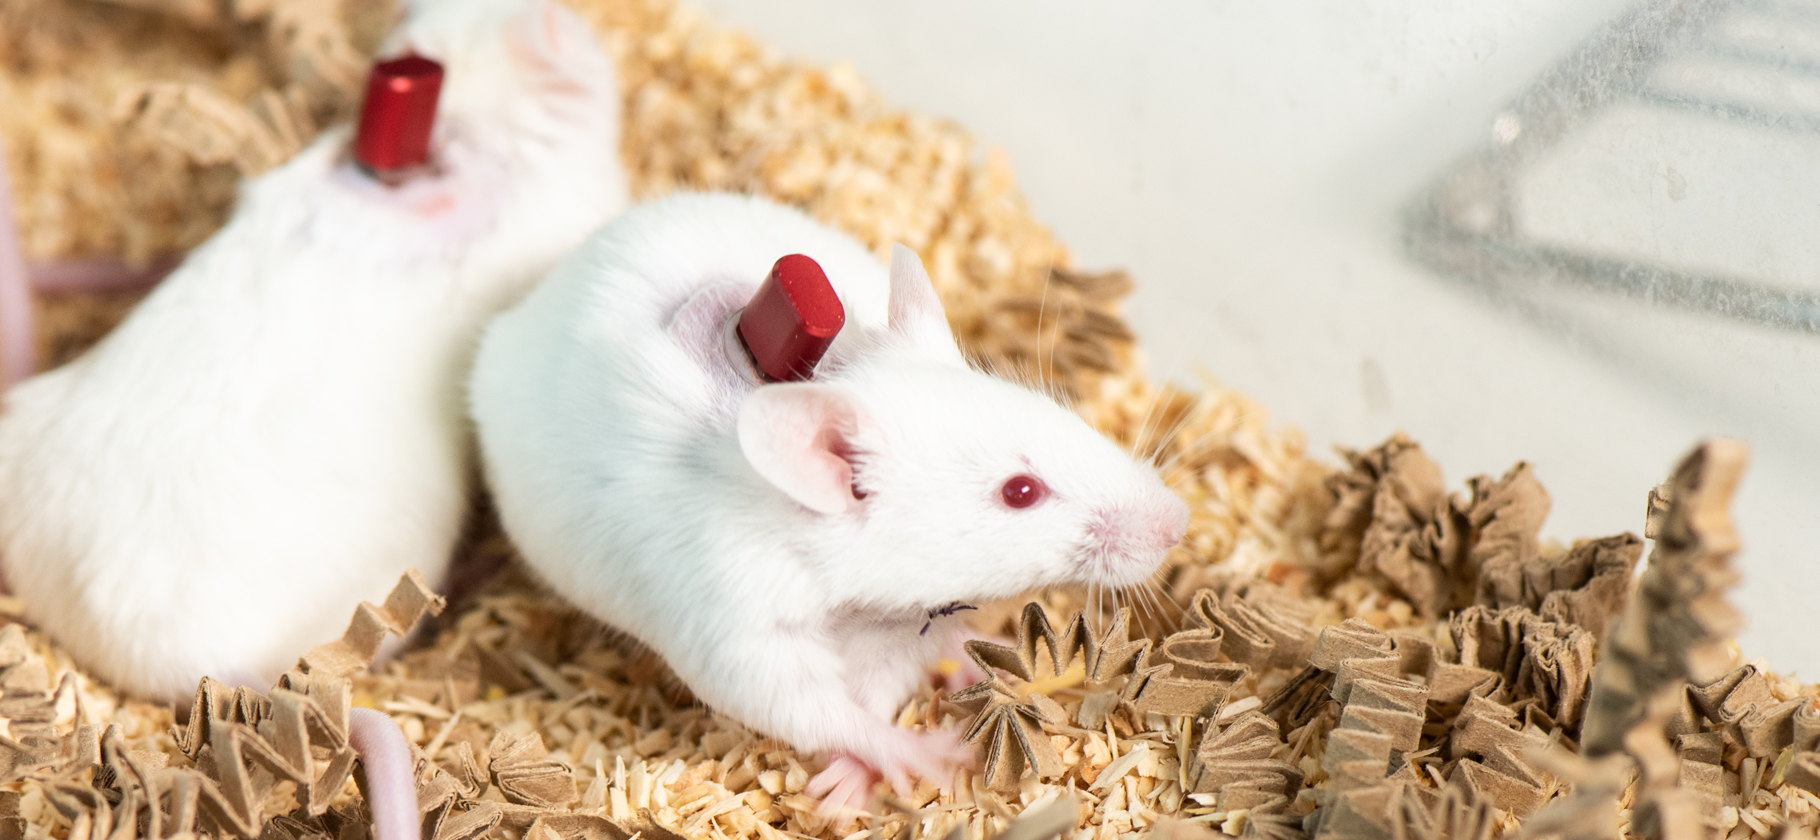 Group housed cannulated mice using the Vascular Access Button